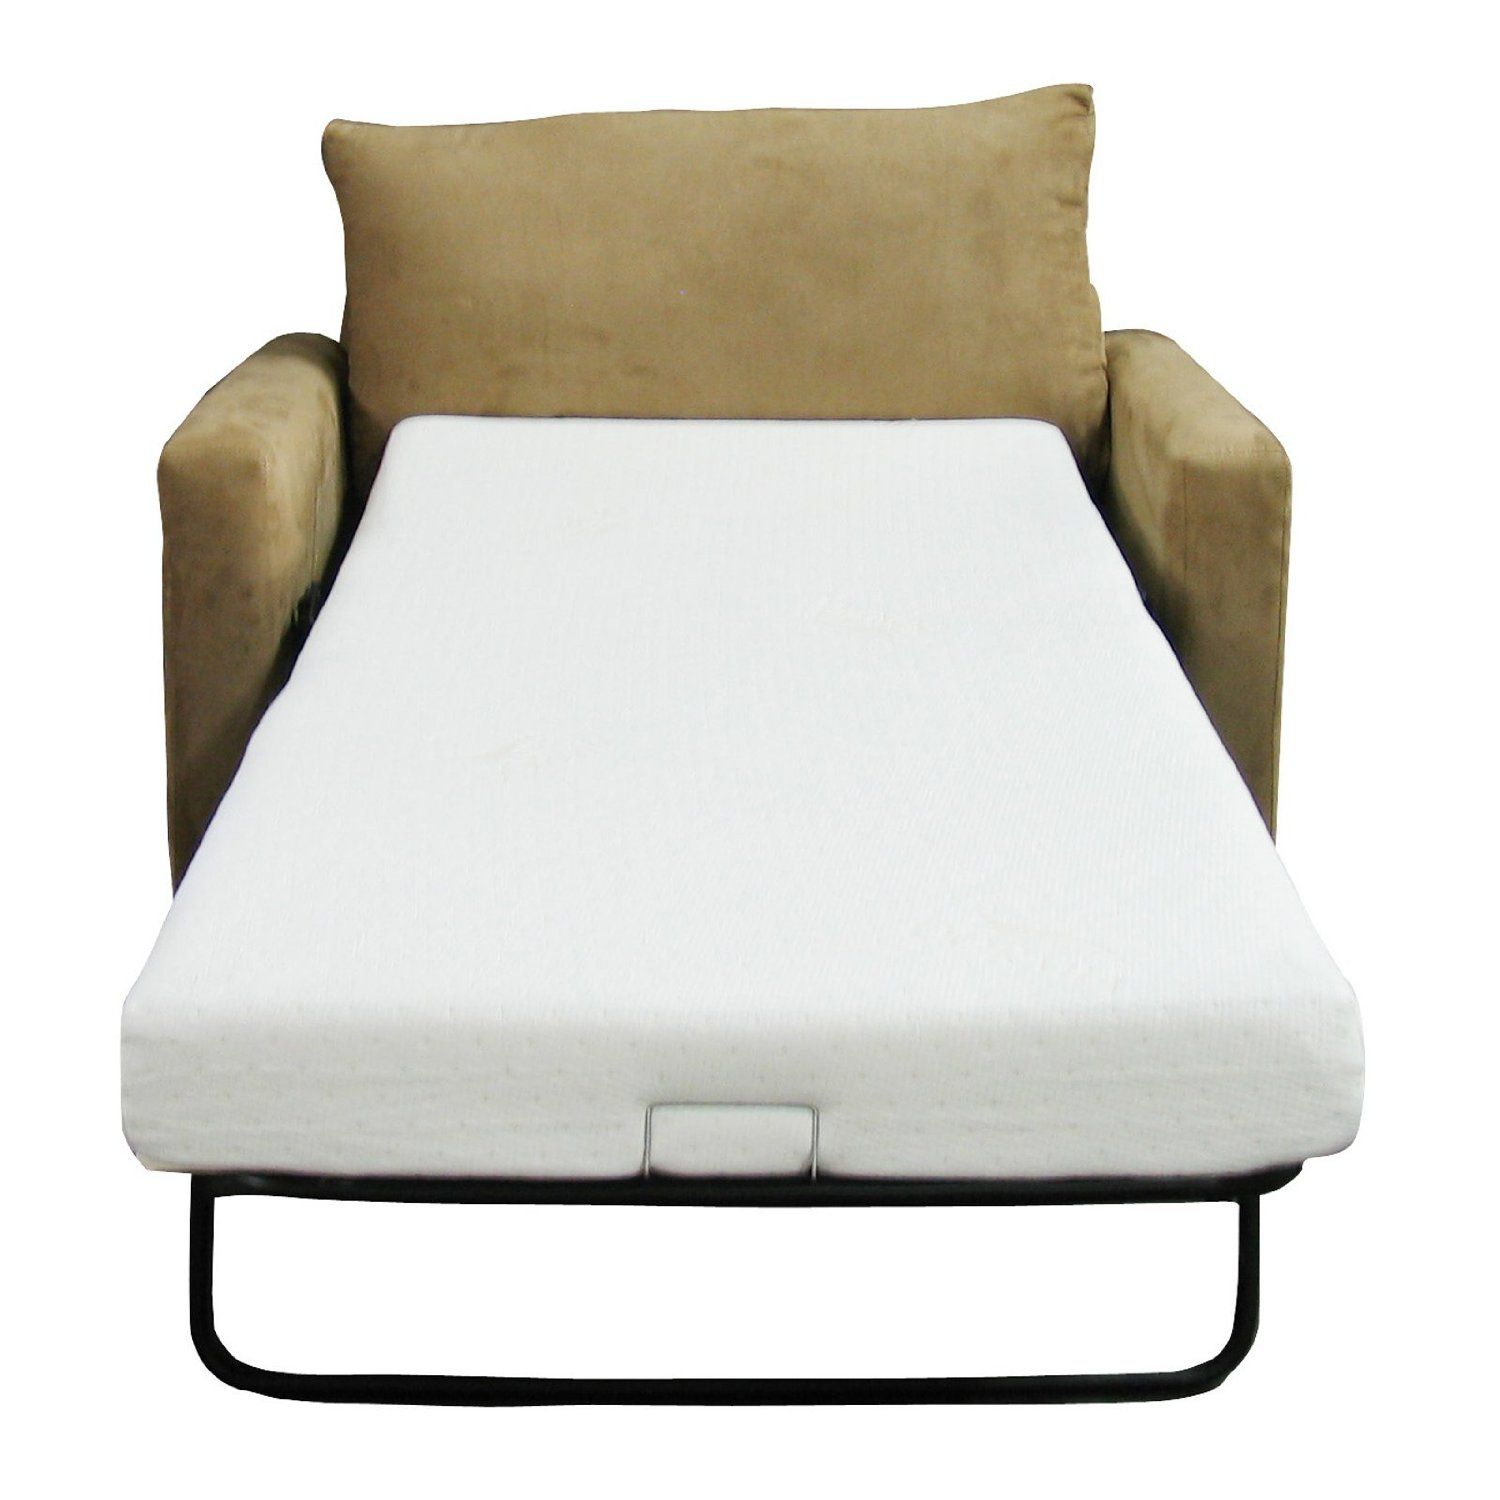 Clic Brands Memory Foam Sofa Mattress